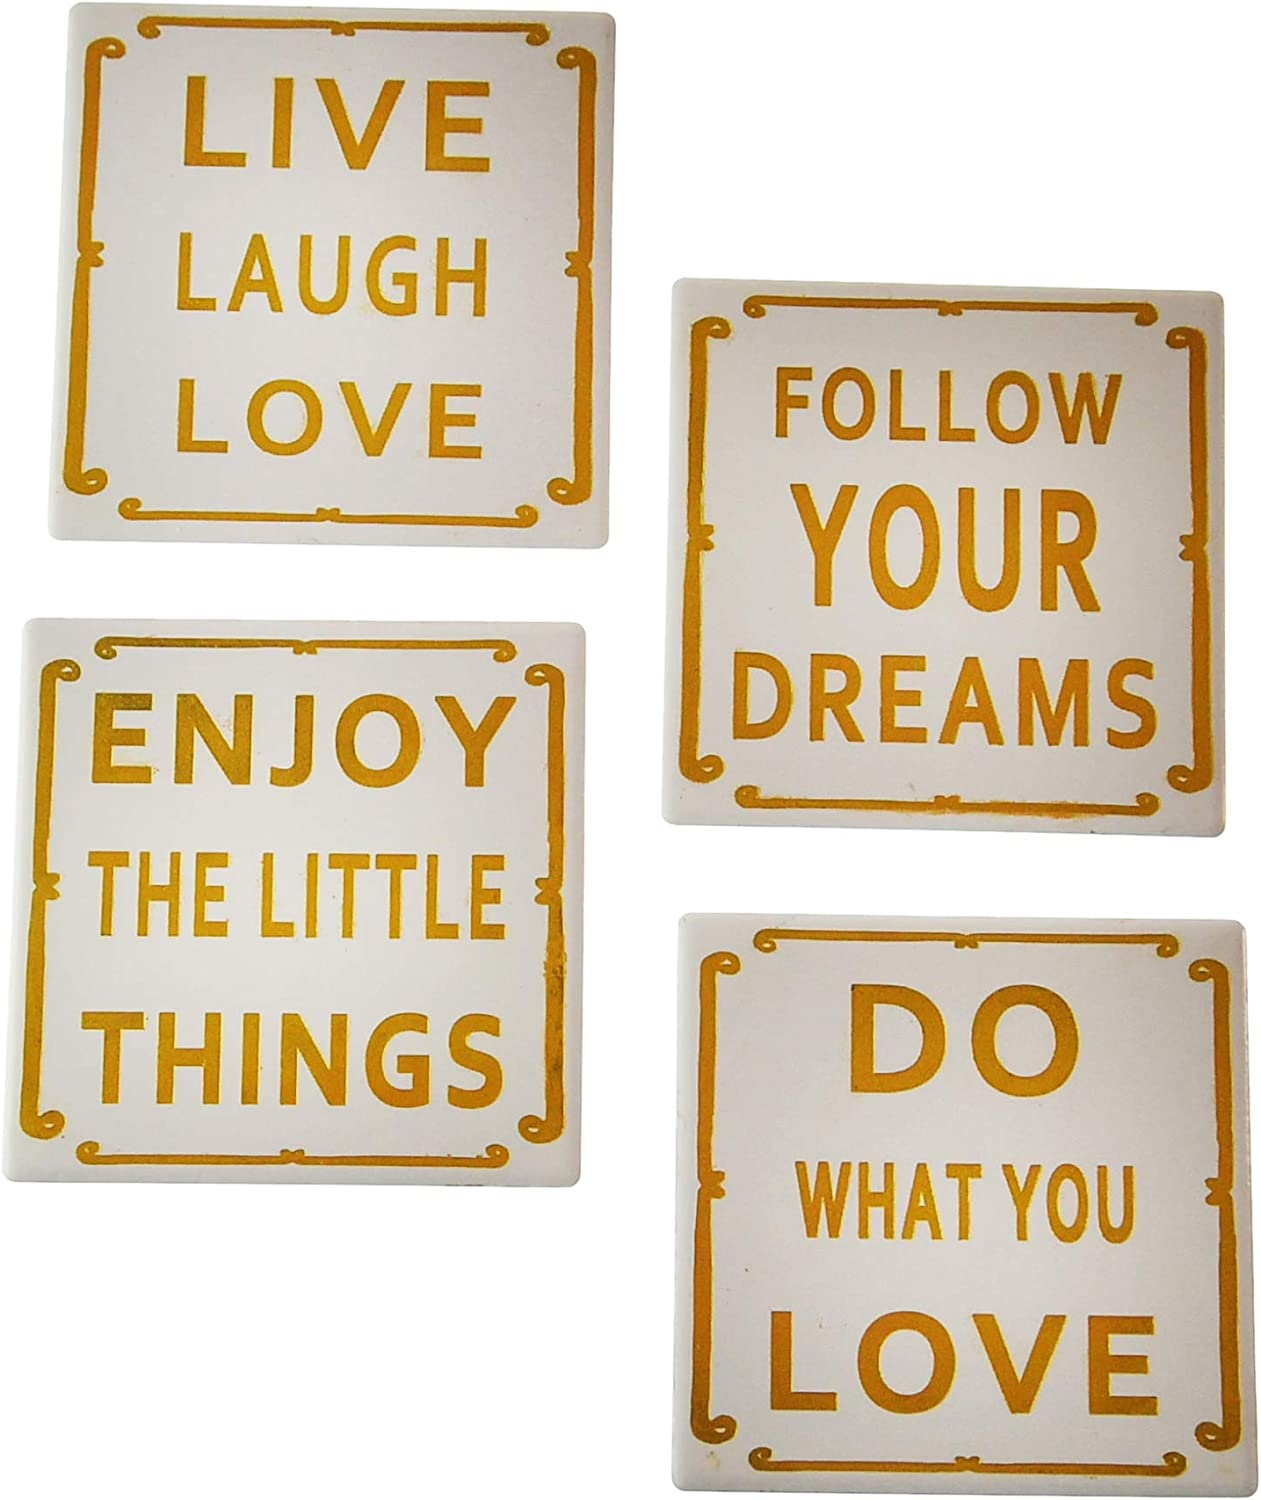 HOME-X Ceramic Drink Coaster Set of 4, Inspirational Table Decor Accessories